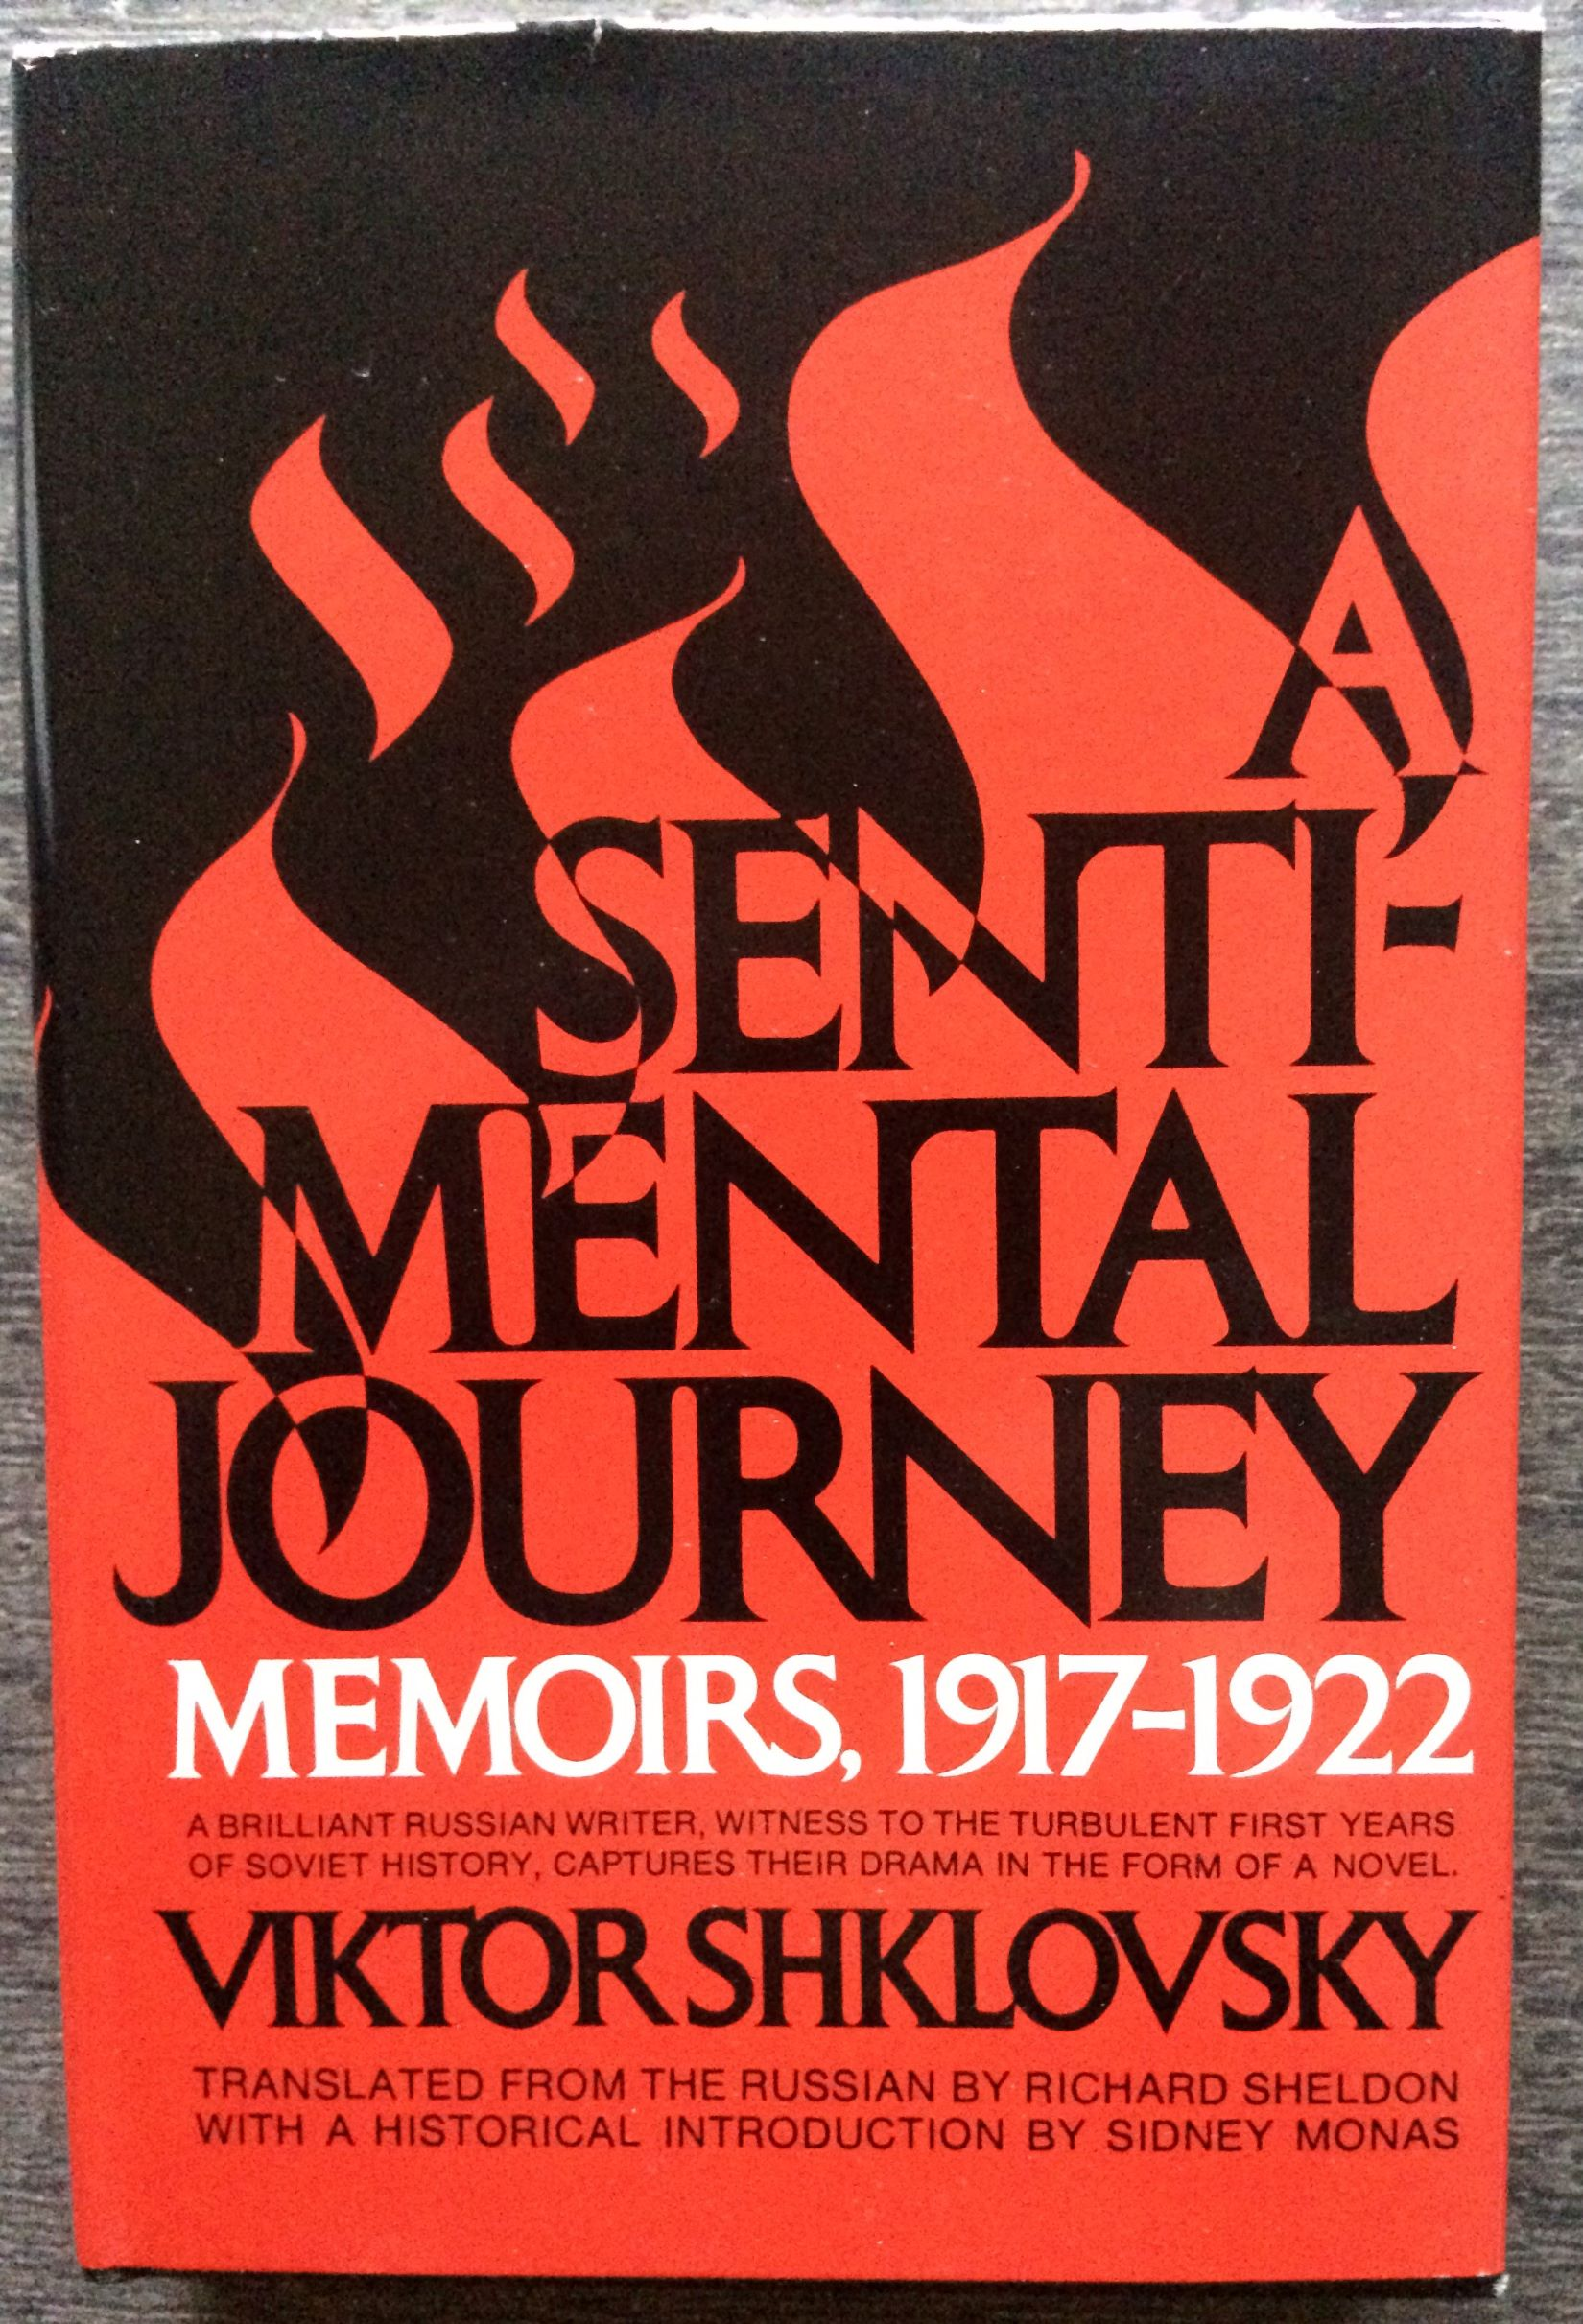 Image for Sentimental Journey, Memoirs, 1917-1922.